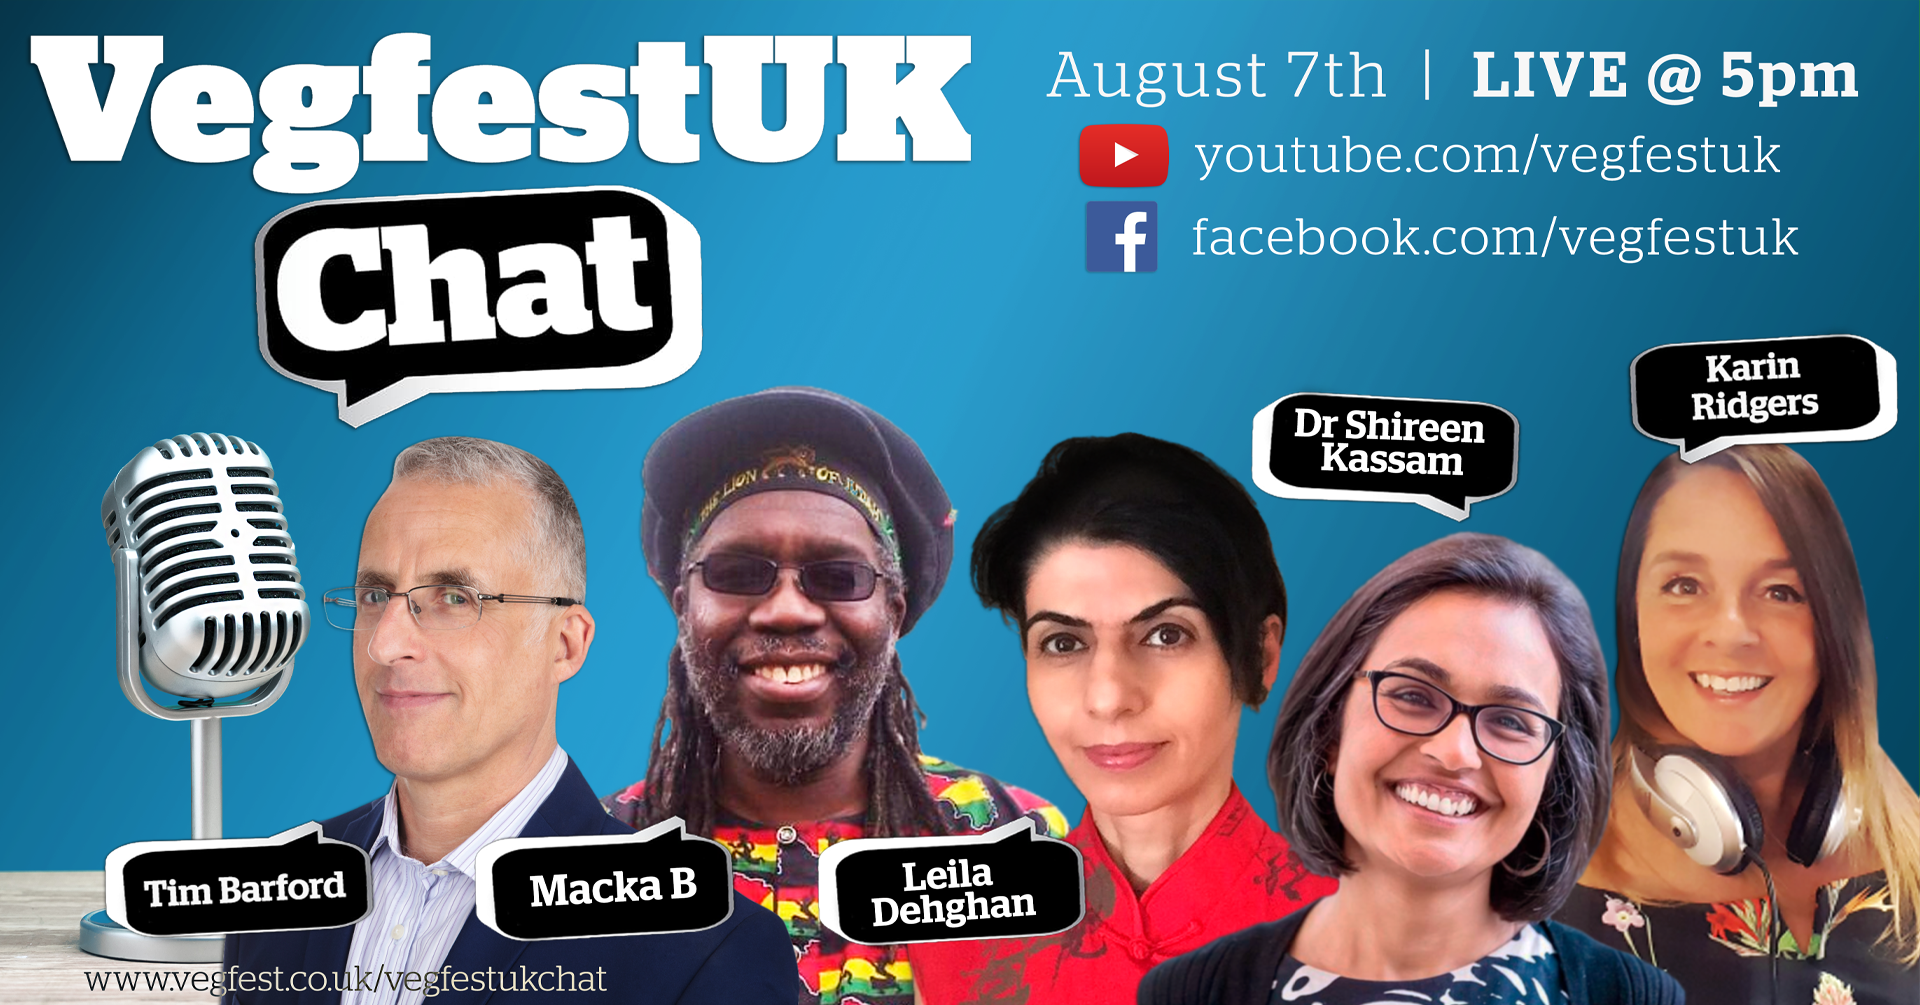 VegfestUK Chat episode 6 coming this Friday, and it's a Summerfest special!